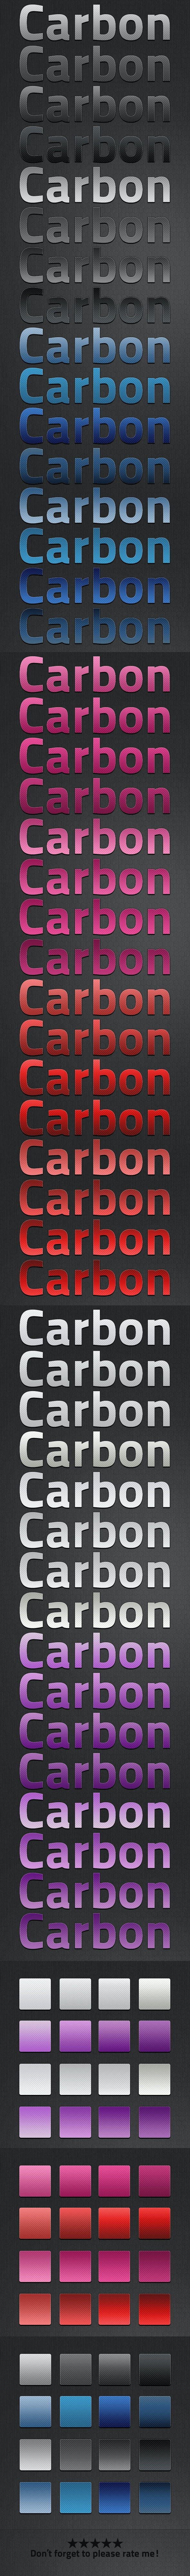 Carbon v2 Style - Text Effects Styles